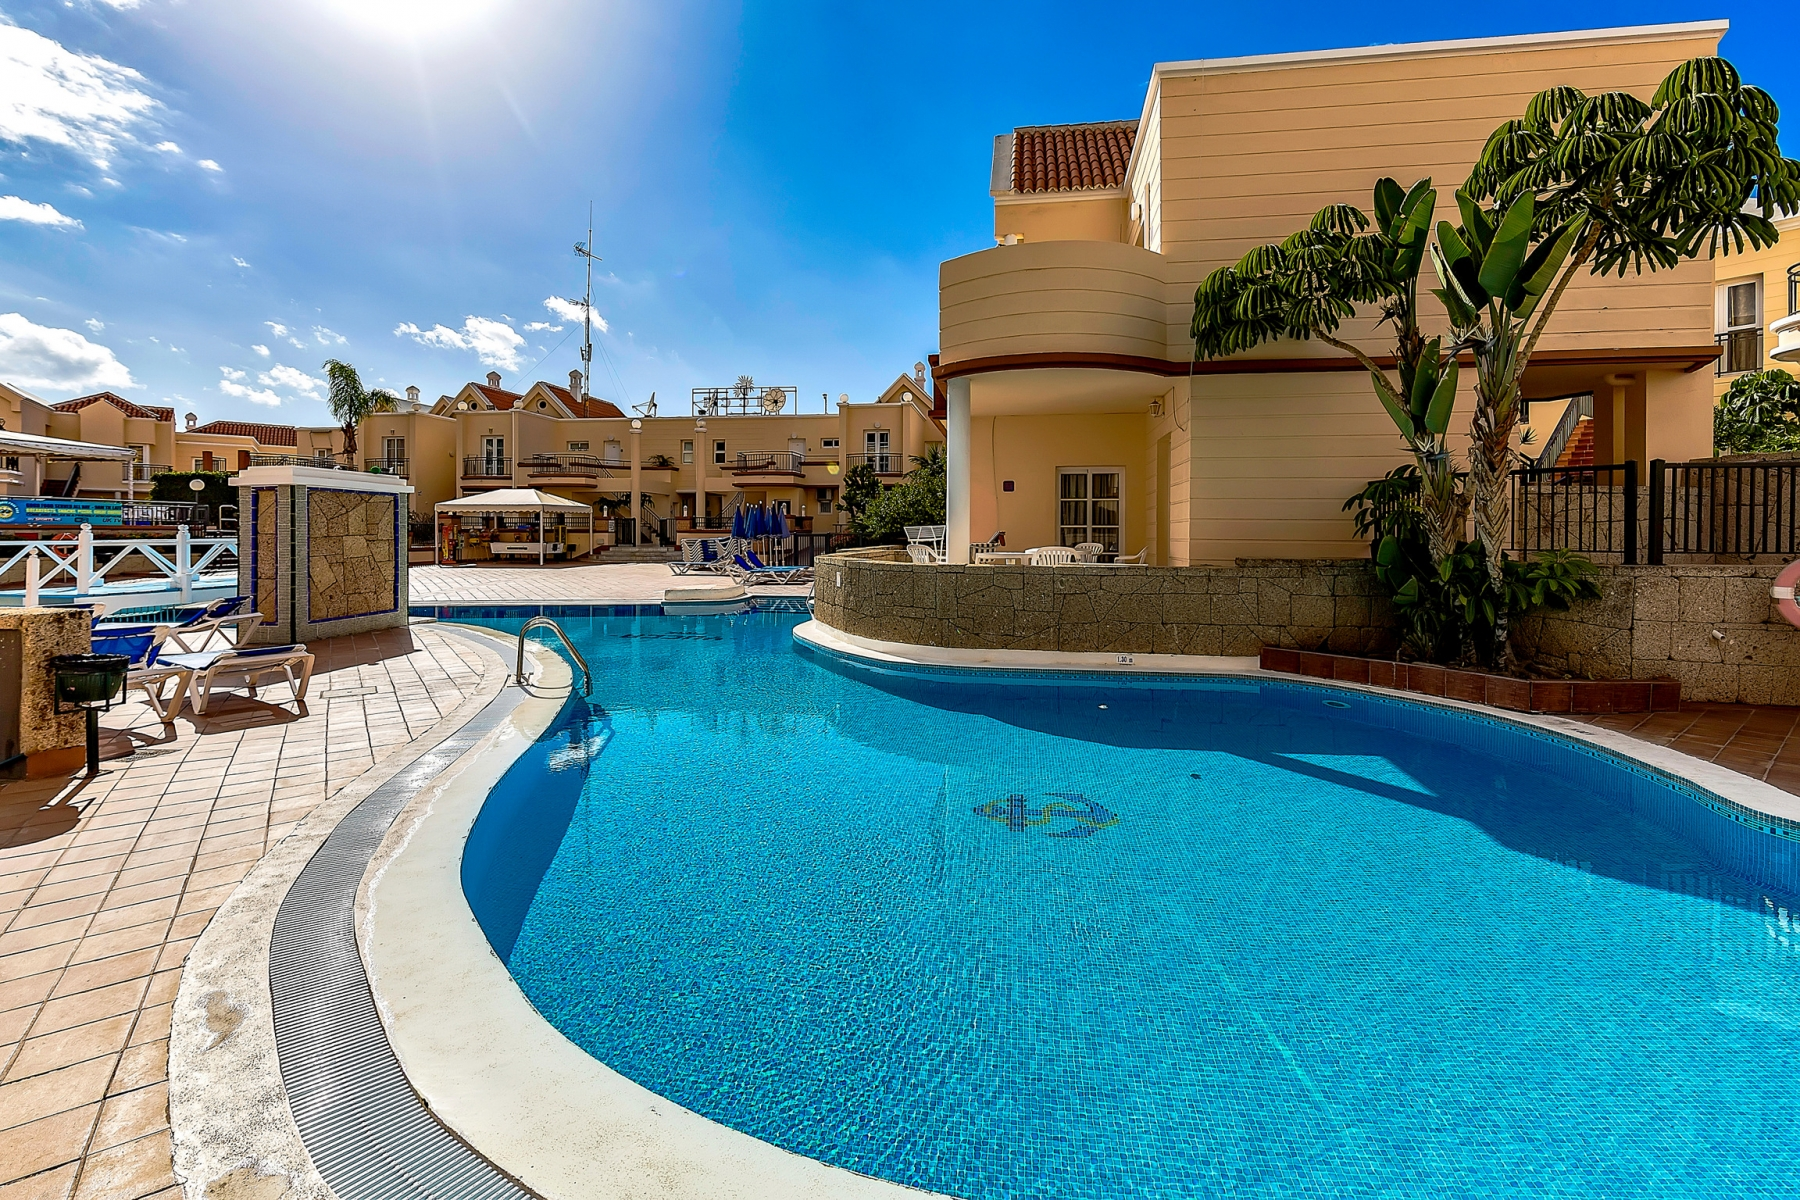 Properties for Sale in Tenerife, Canary Islands, Spain | SylkWayStar Real Estate. 1 bedroom apartment Yucca Park. Image-22604